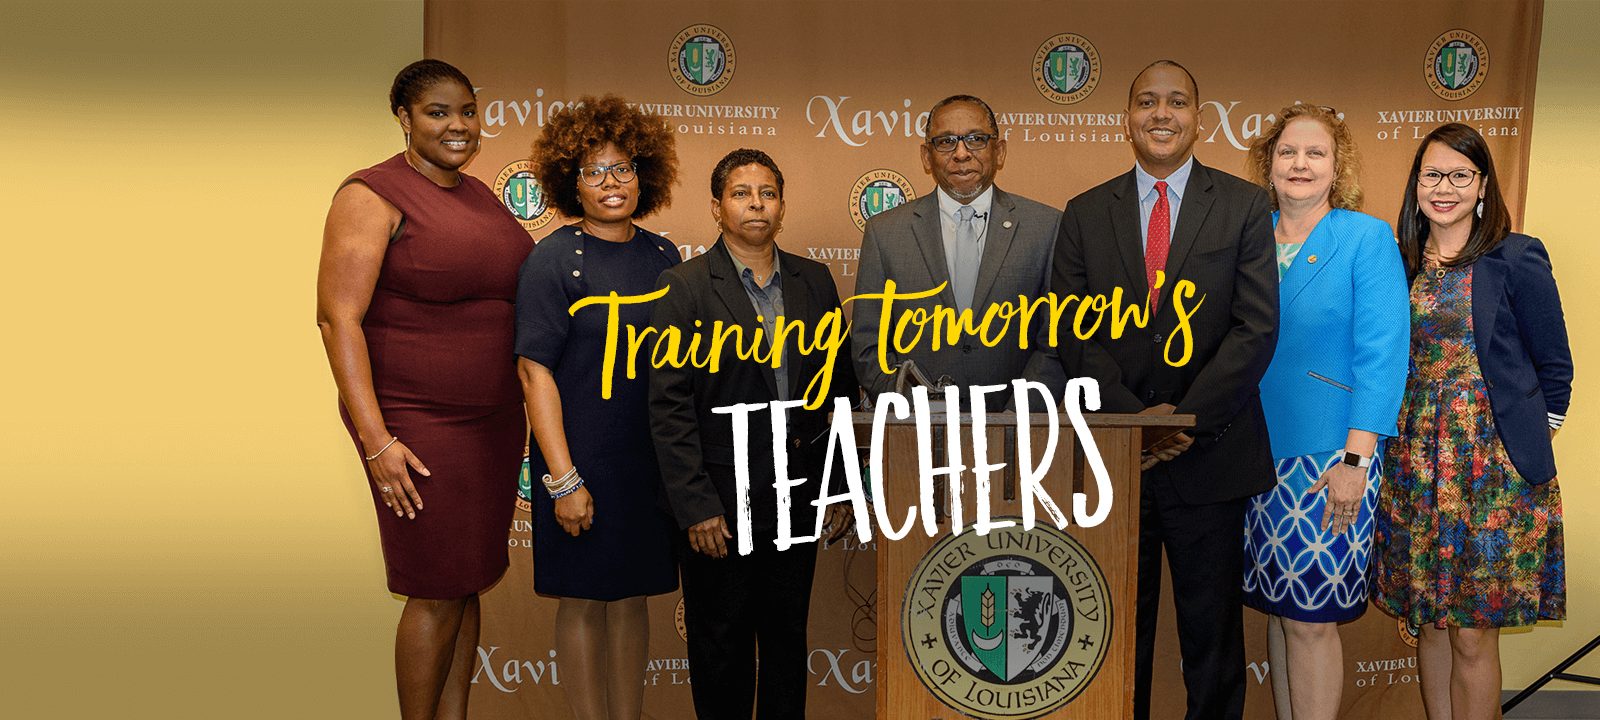 New Orleans Education Organizations awarded nearly $13,000,000 to collaborate on strategy to recruit and train teachers